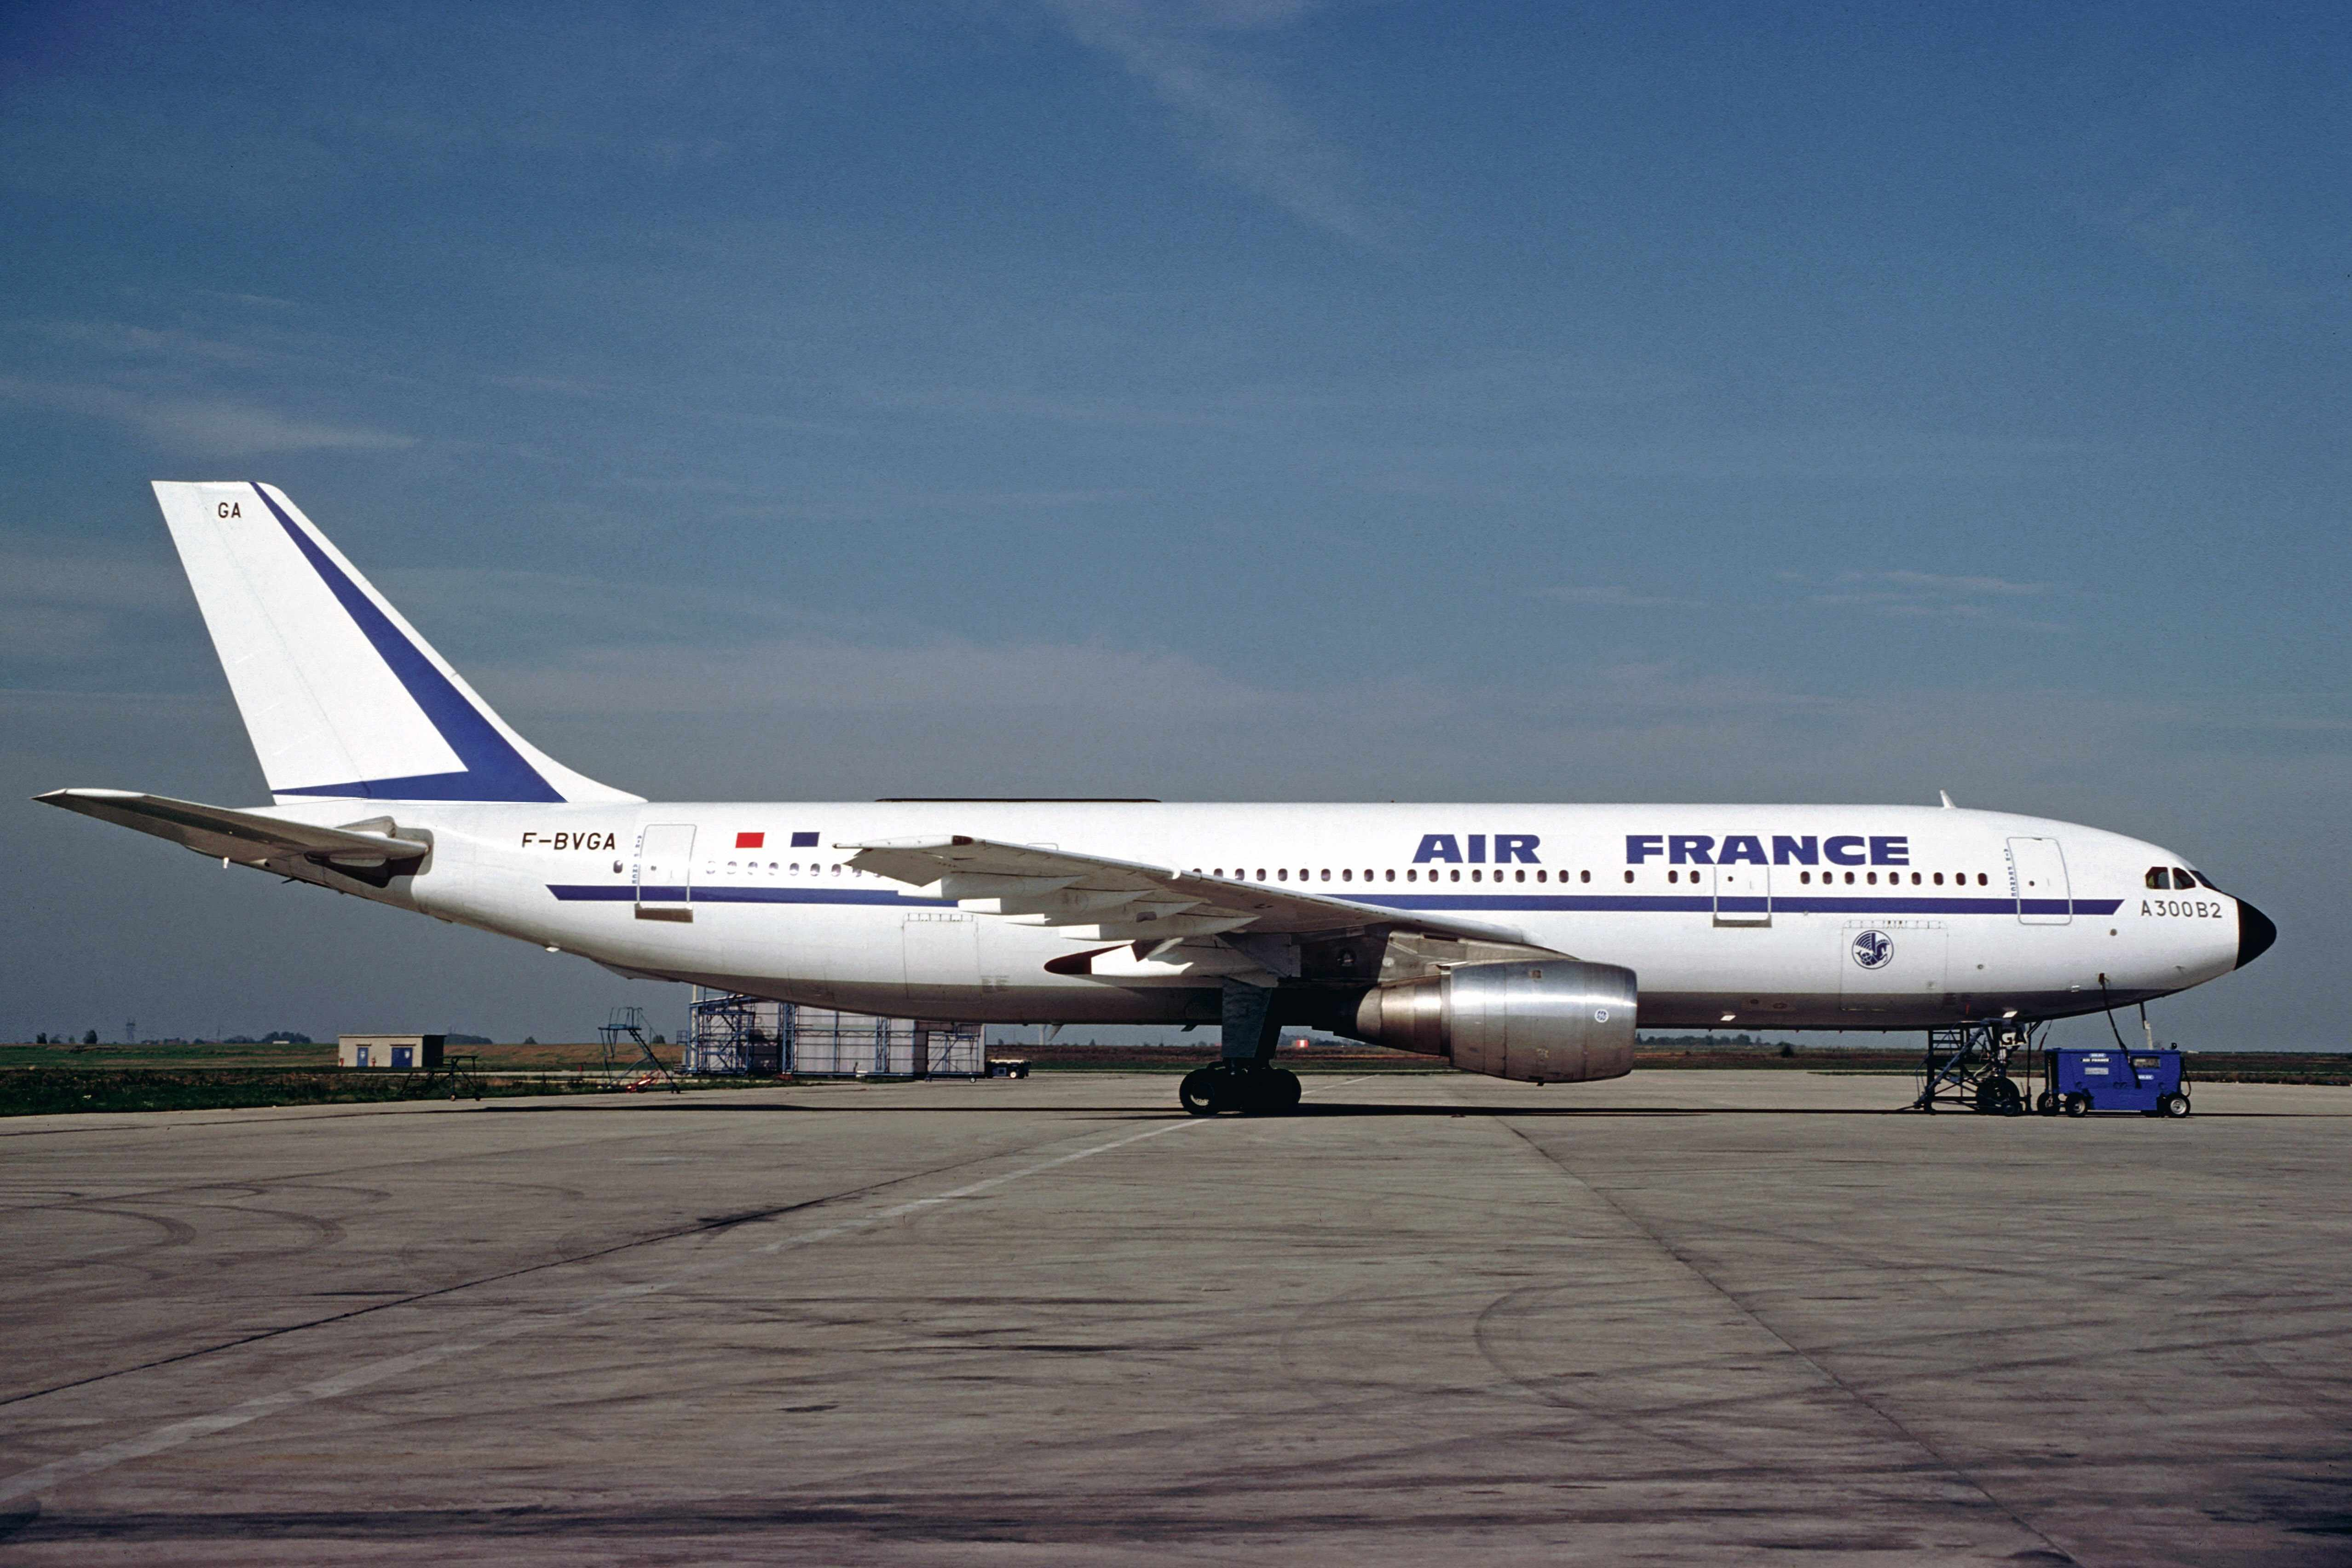 air-france-a300b2-f-bvga-74grd-cdg-cvlr